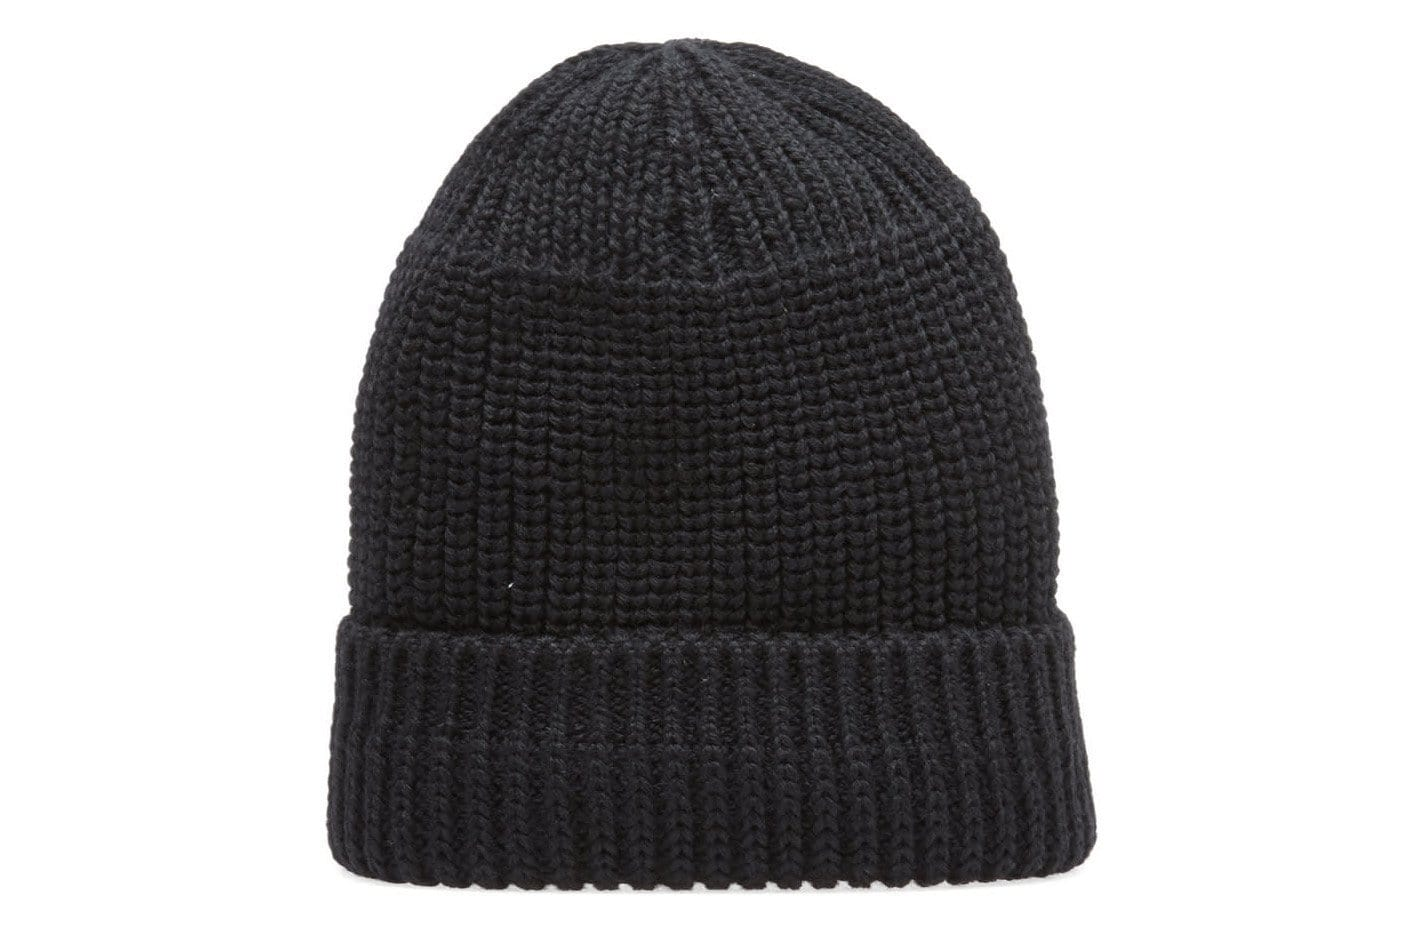 MACHINE KNIT WATCH CAP-WI-7171 ACCESSORIES WINGS+HORNS